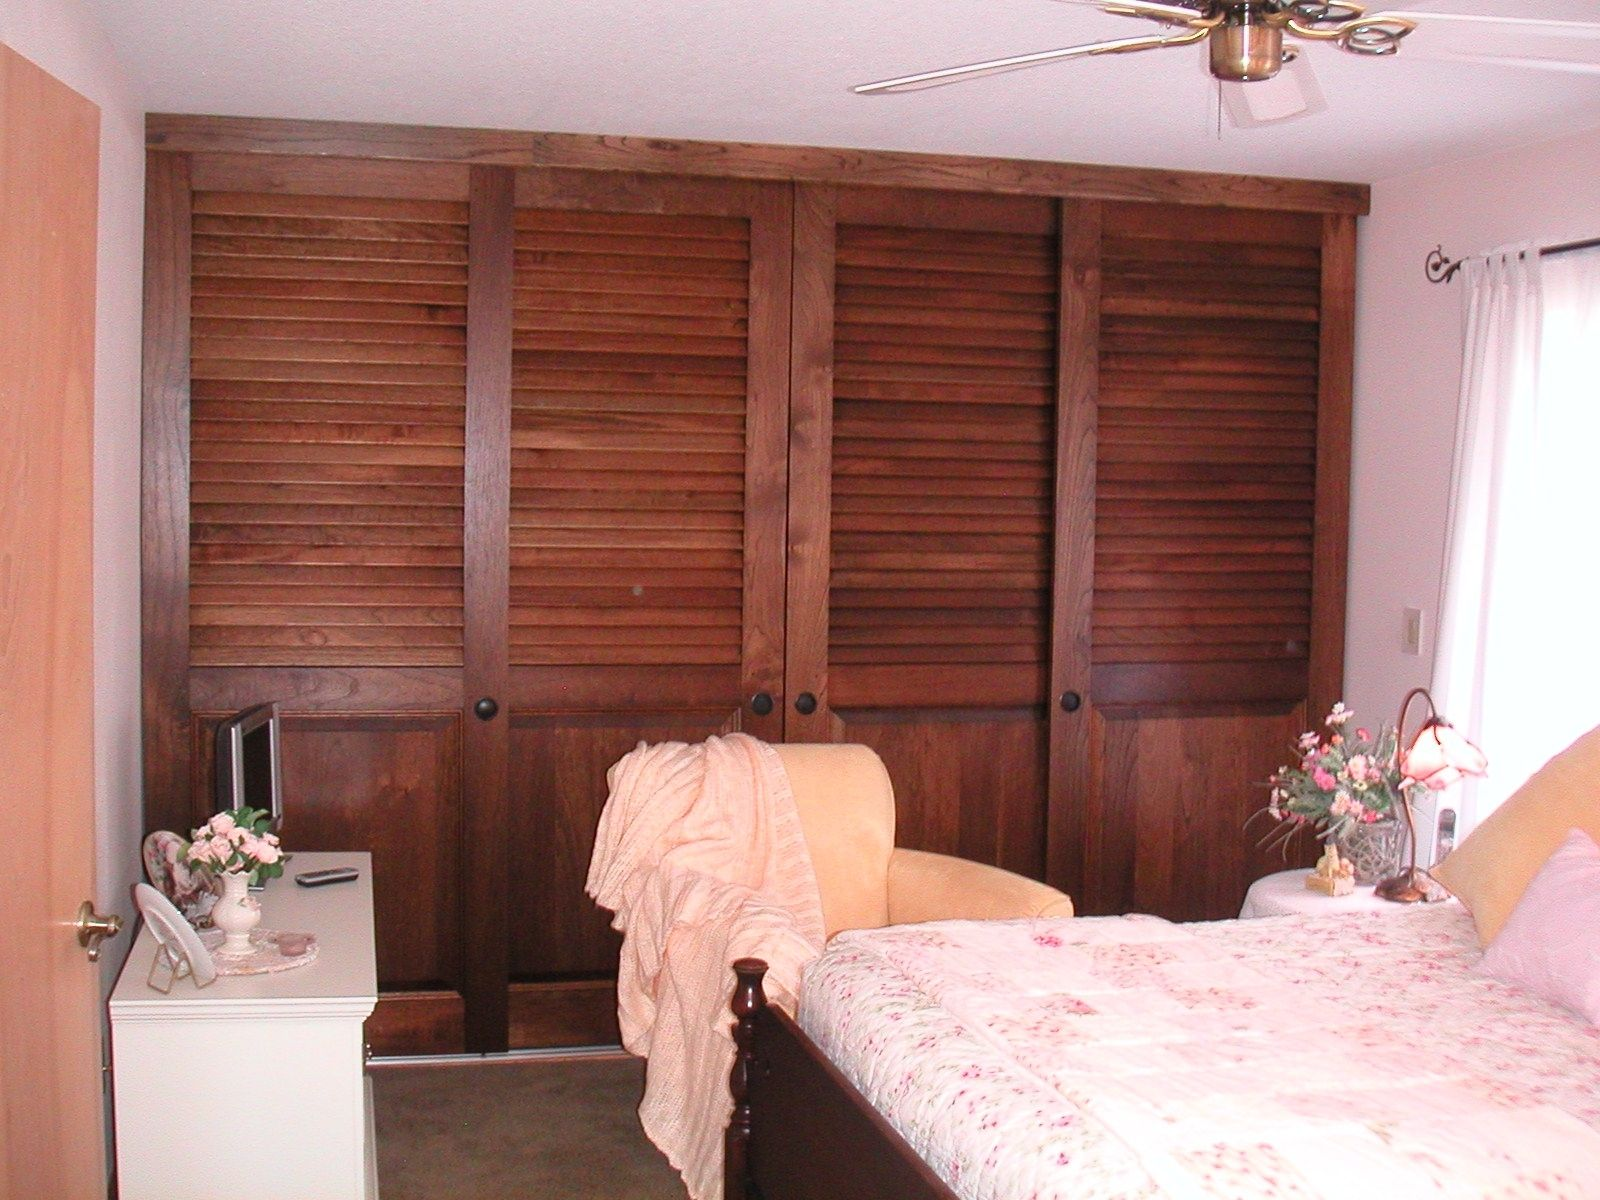 Custom sized sliding closet doors 2 1 2 fixed plantation louvers over colonial raised panels - Plantation louvered closet doors ...